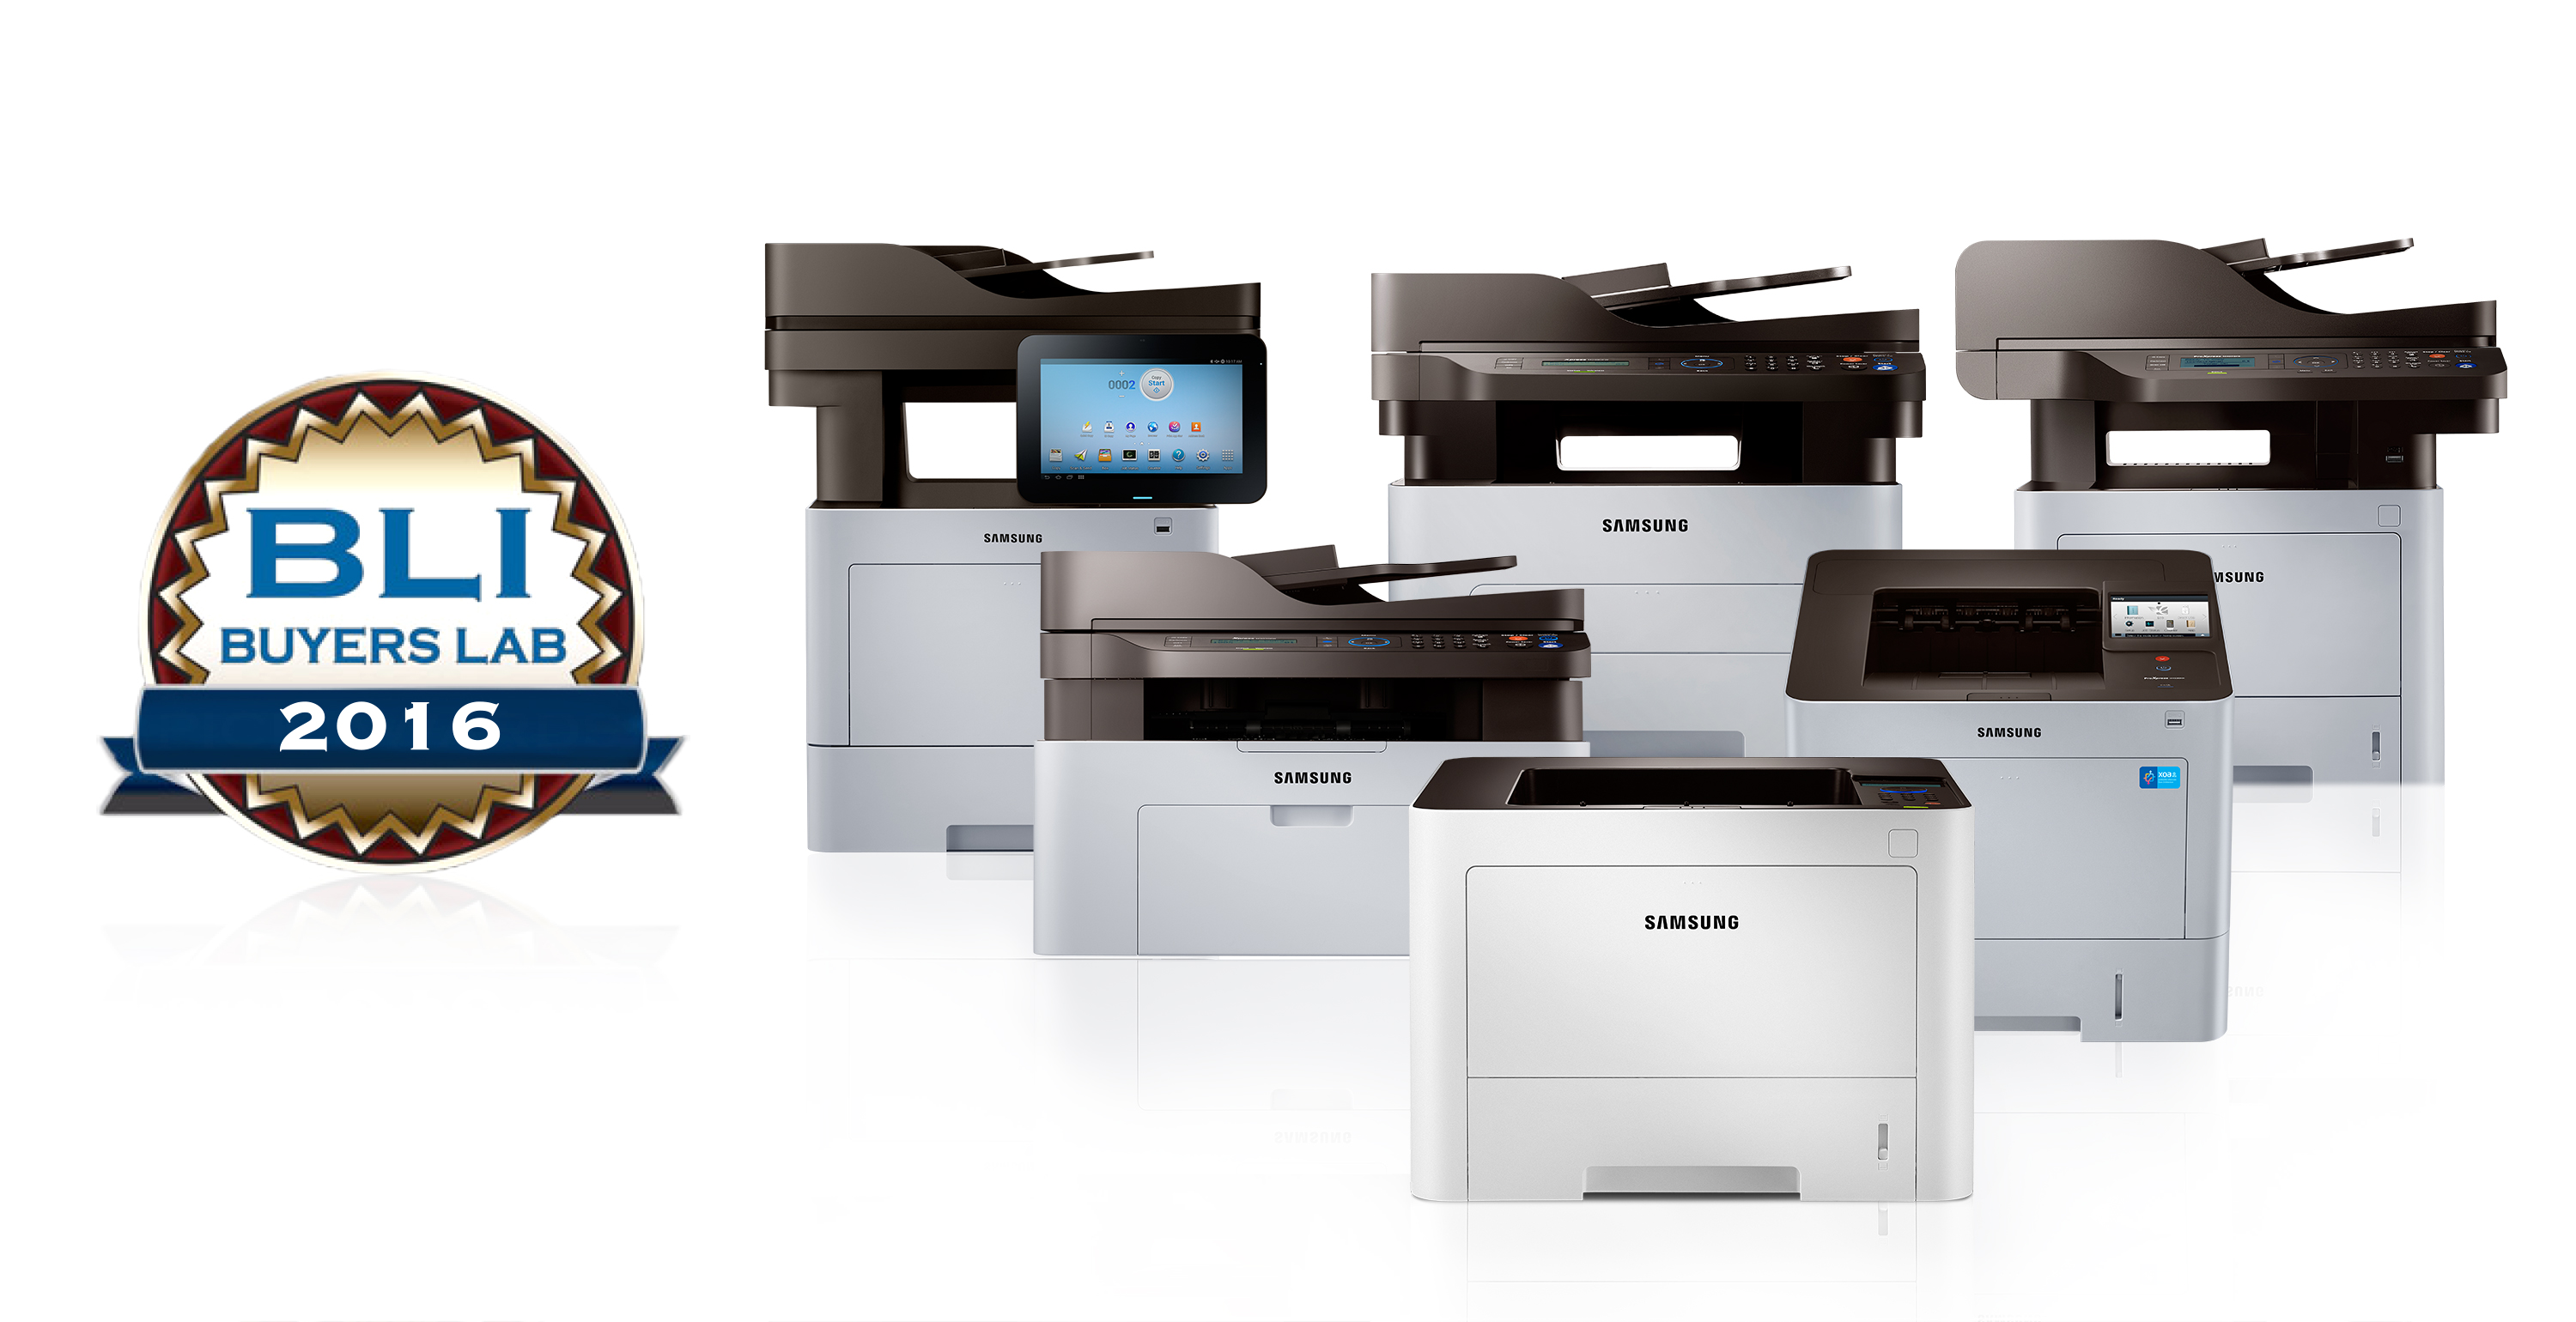 Samsung Printing wins BLI Award for the Fourth Time